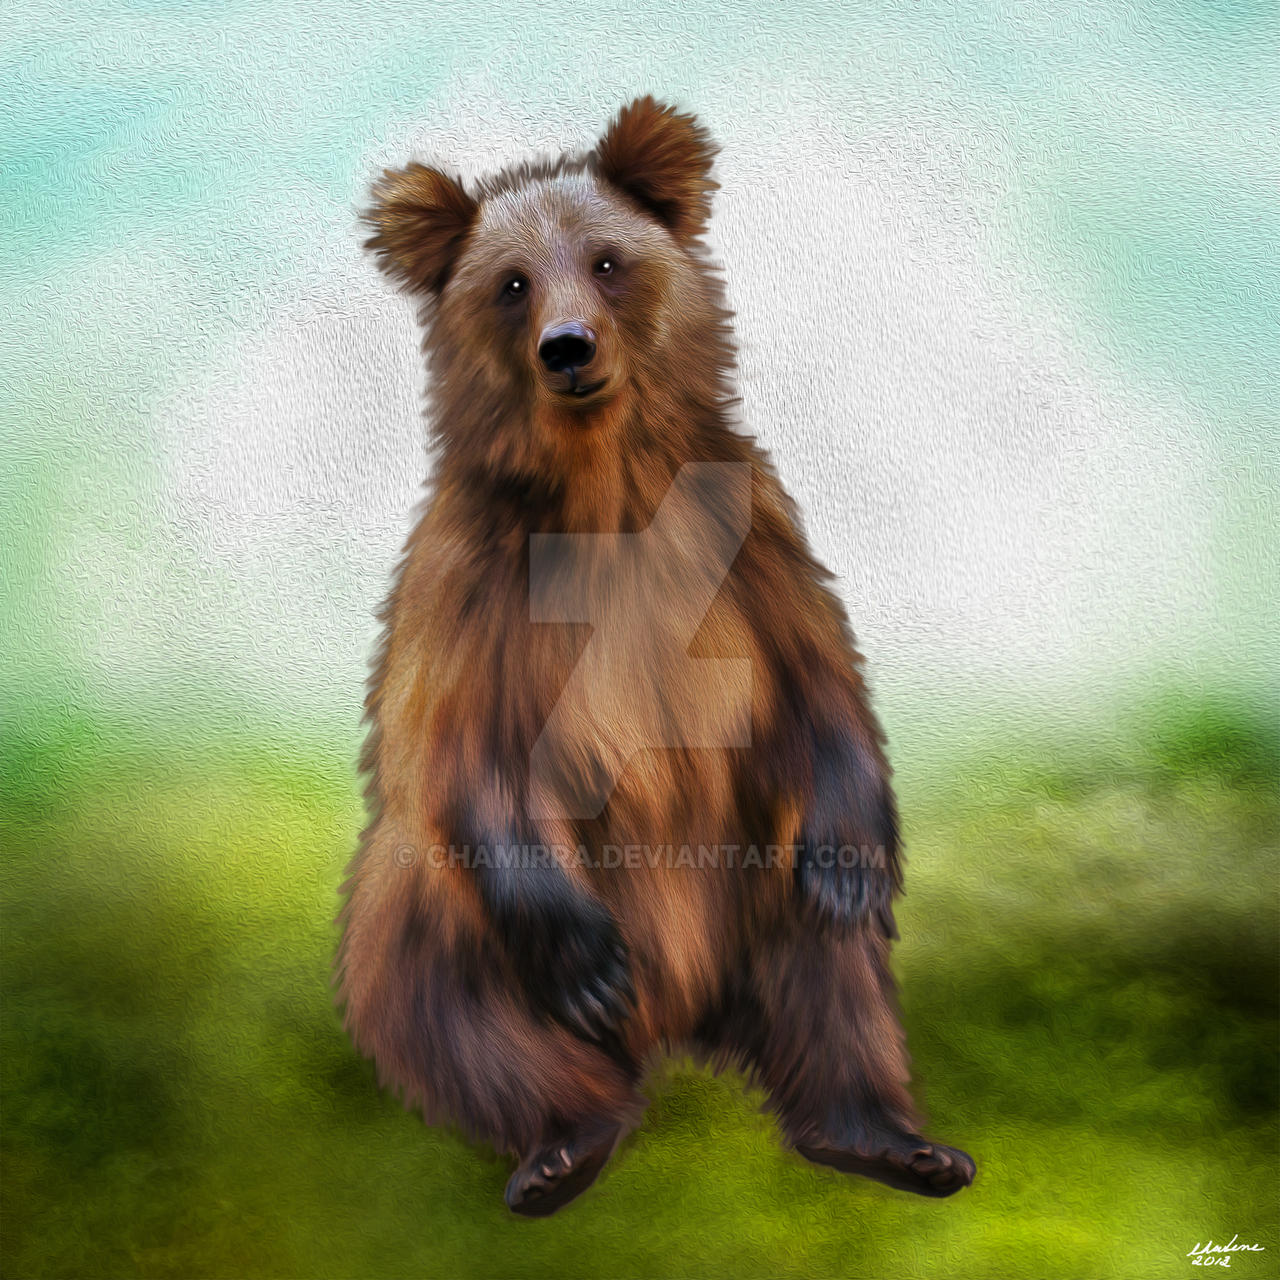 the bear painting by chamirra watch digital art drawings paintings ...: chamirra.deviantart.com/art/The-Bear-Painting-350511170